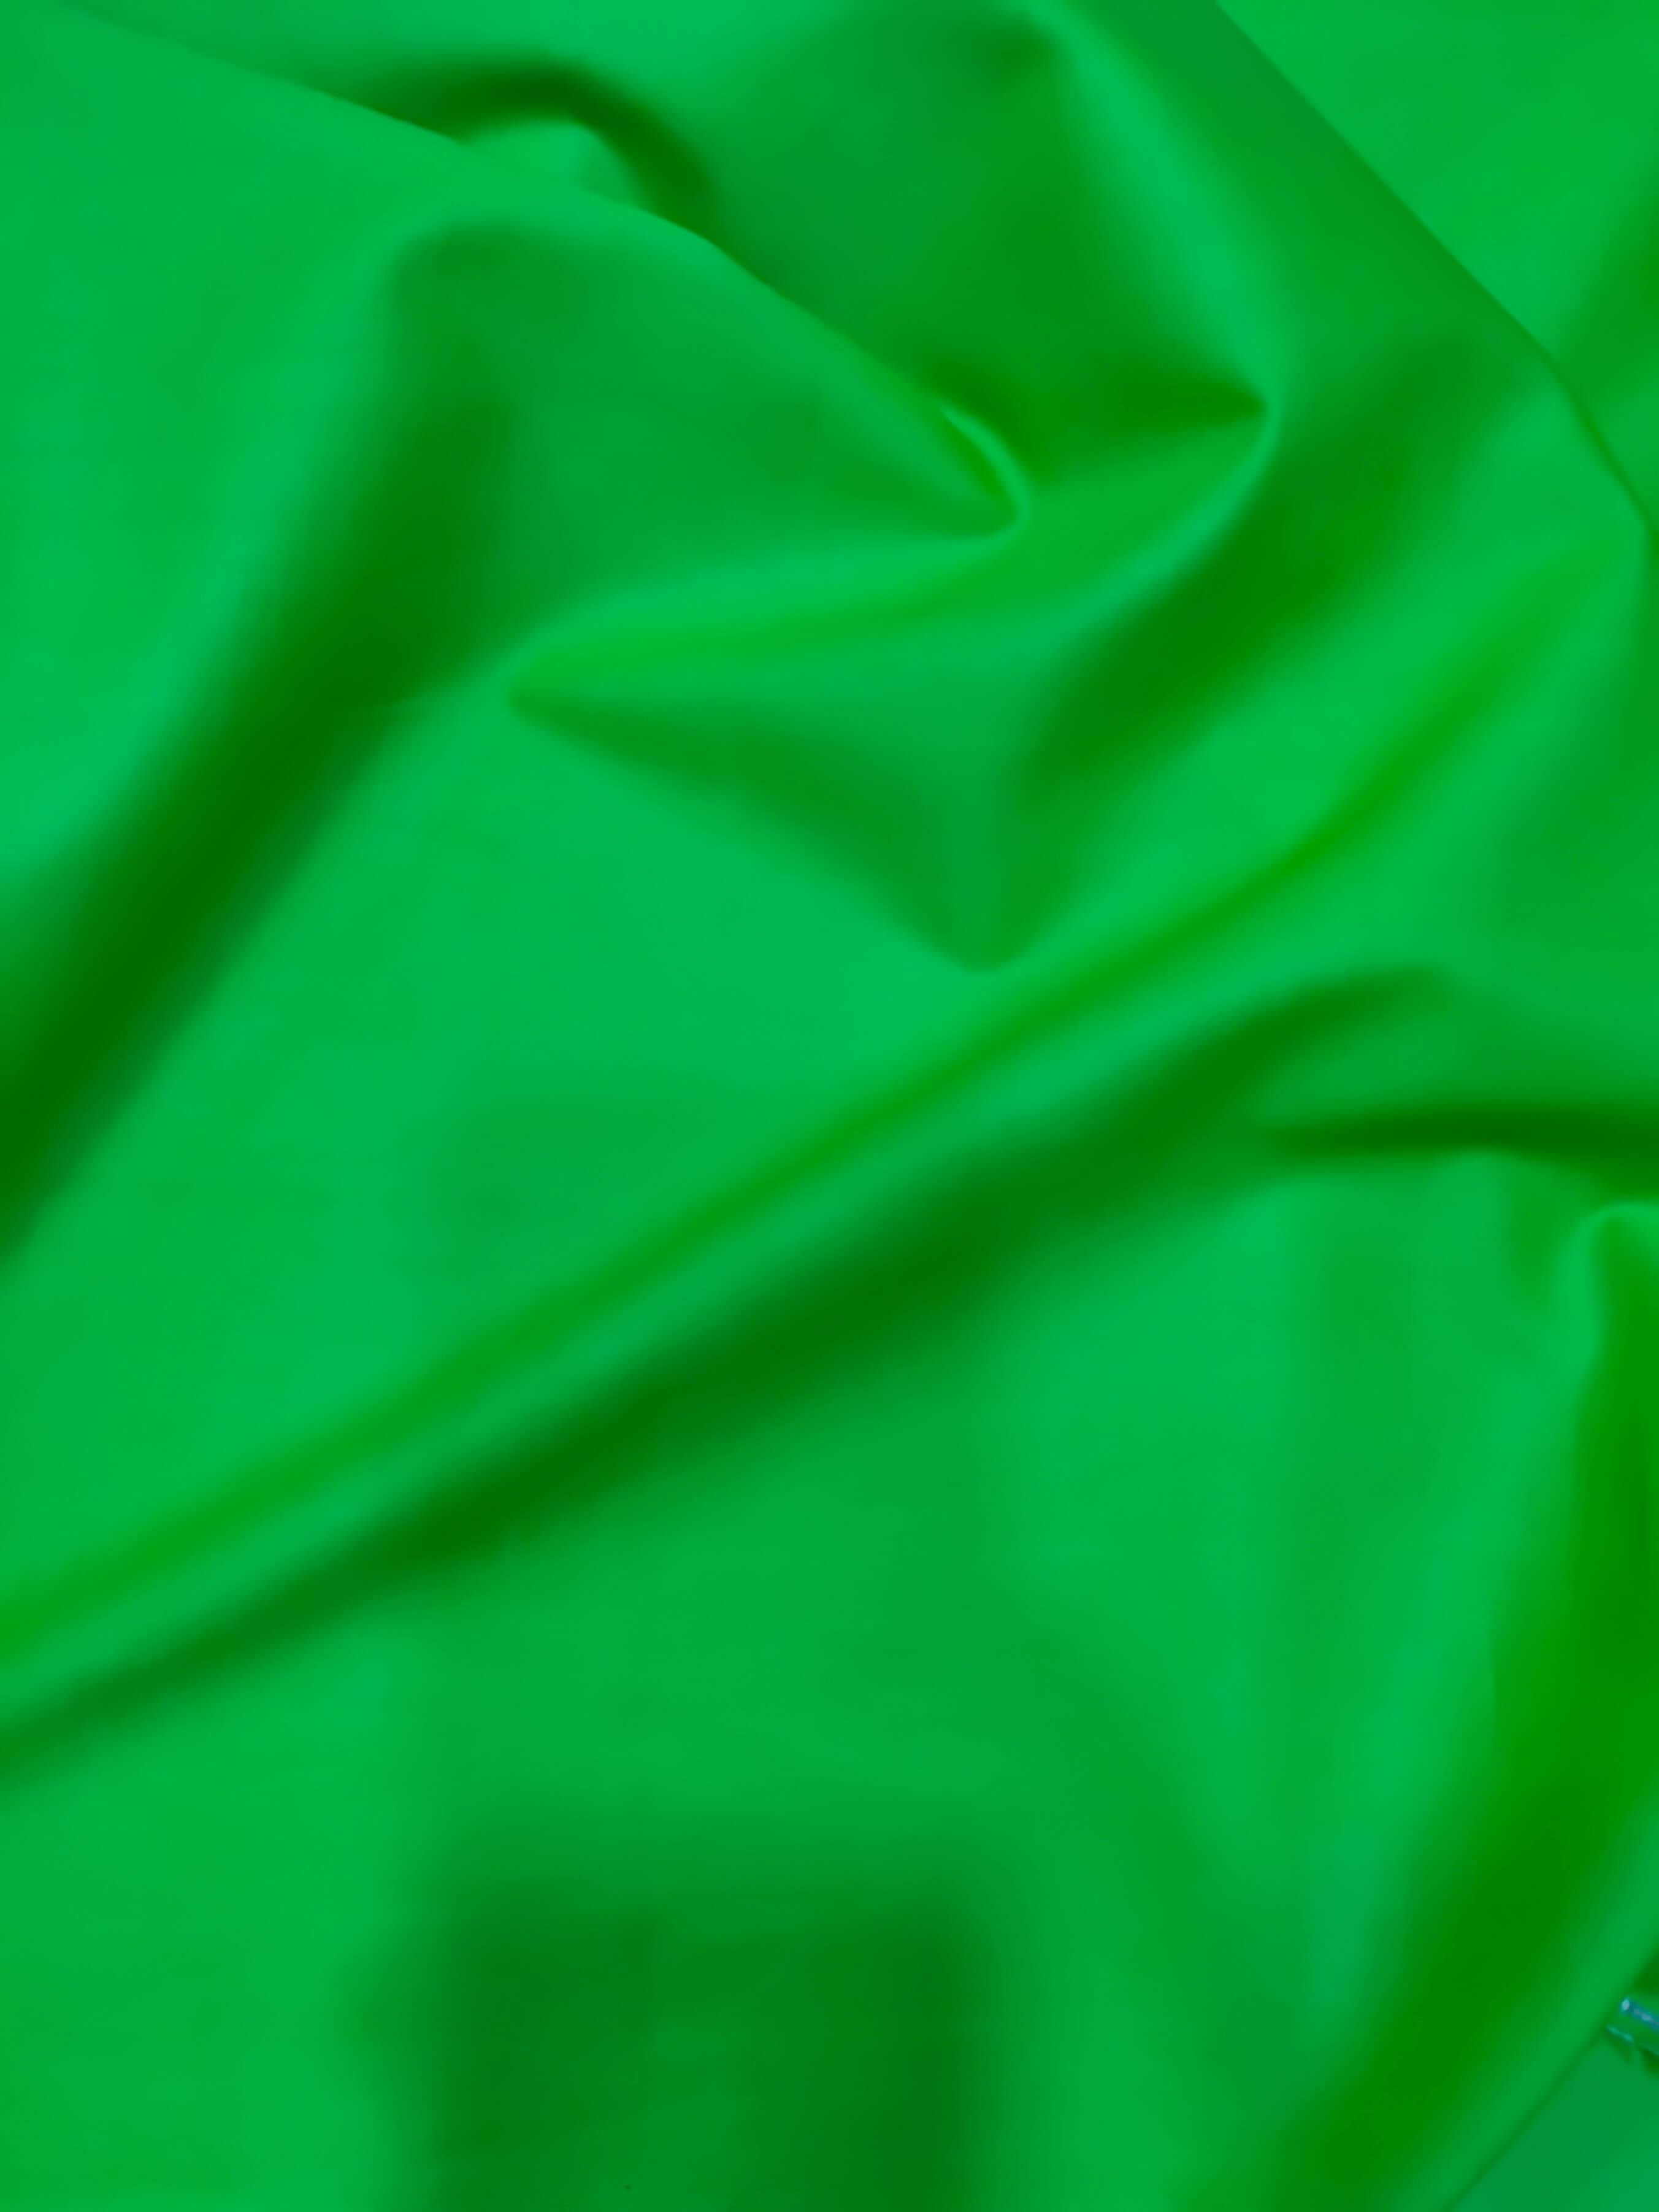 Pure Lawn Fabric Plain Single Color unstitched CLR-17 - FaisalFabrics.pk